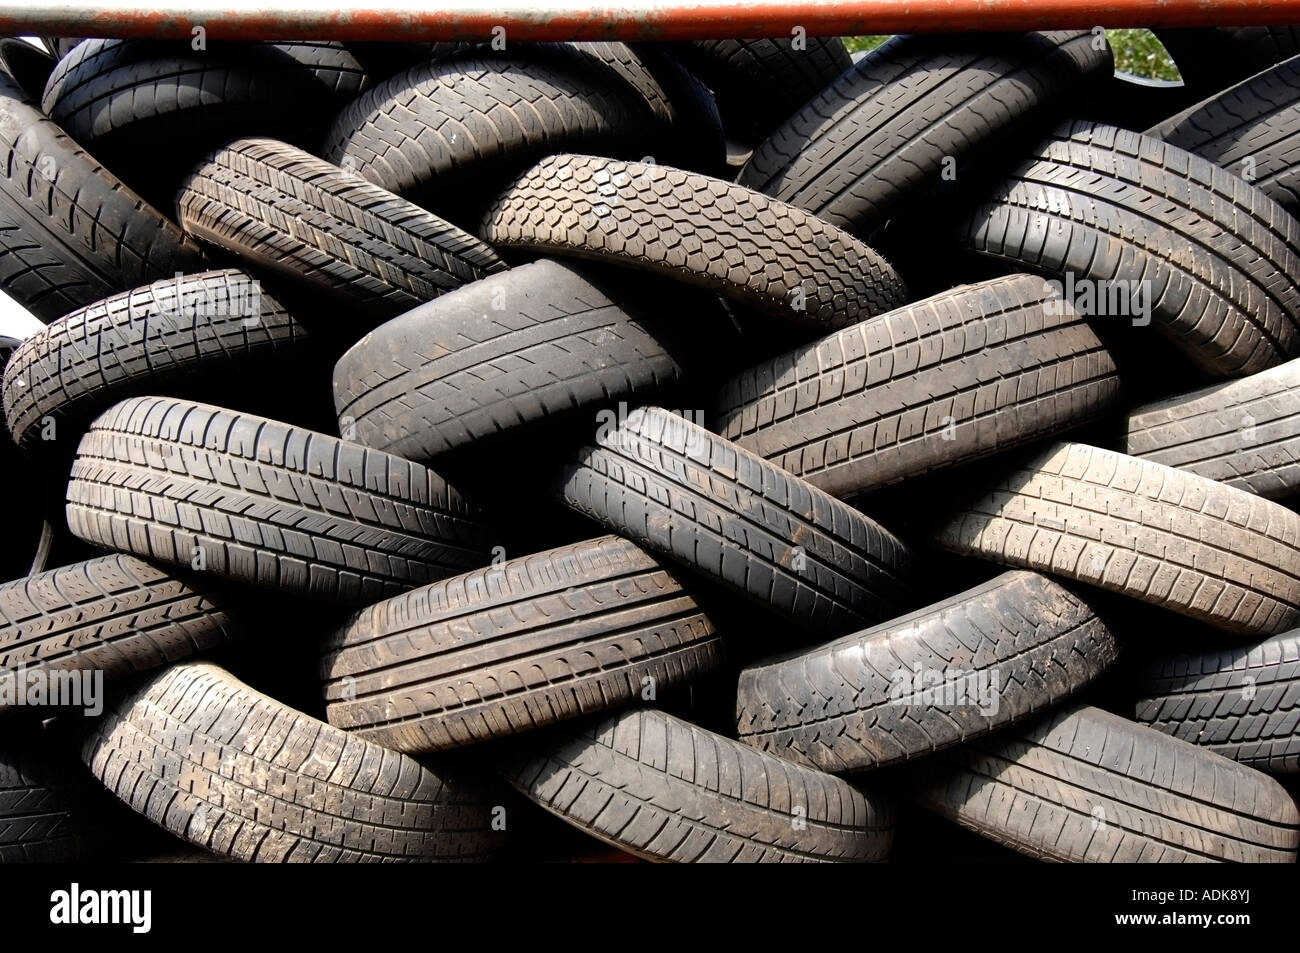 Worn out car tyres at a scrapyard wait to be shredded and recycled - Stock Image